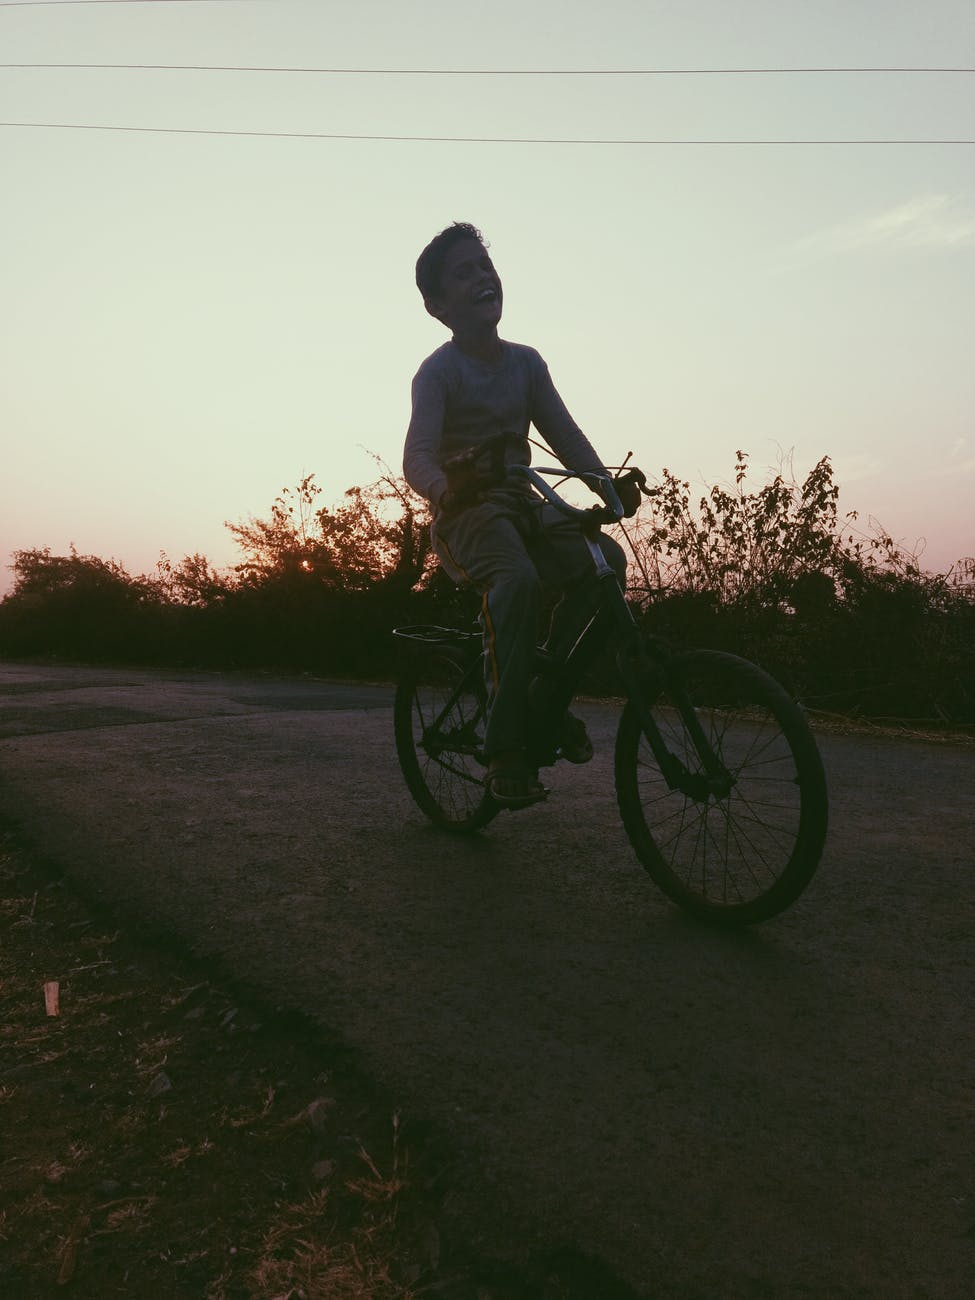 boy riding of bicycle